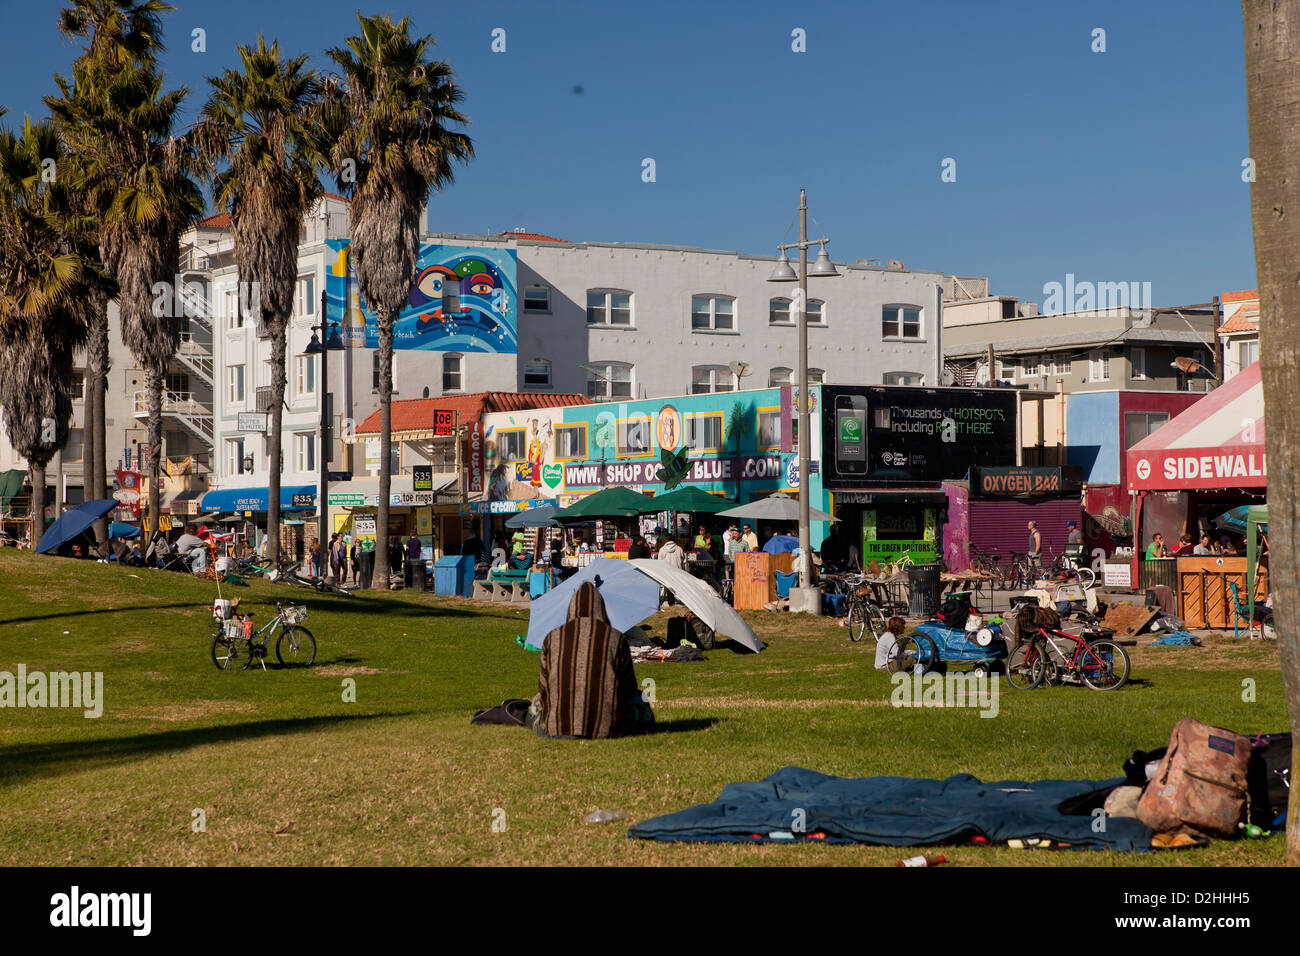 homeless people at Venice Beach, Los Angeles, California, United States of America, USA - Stock Image